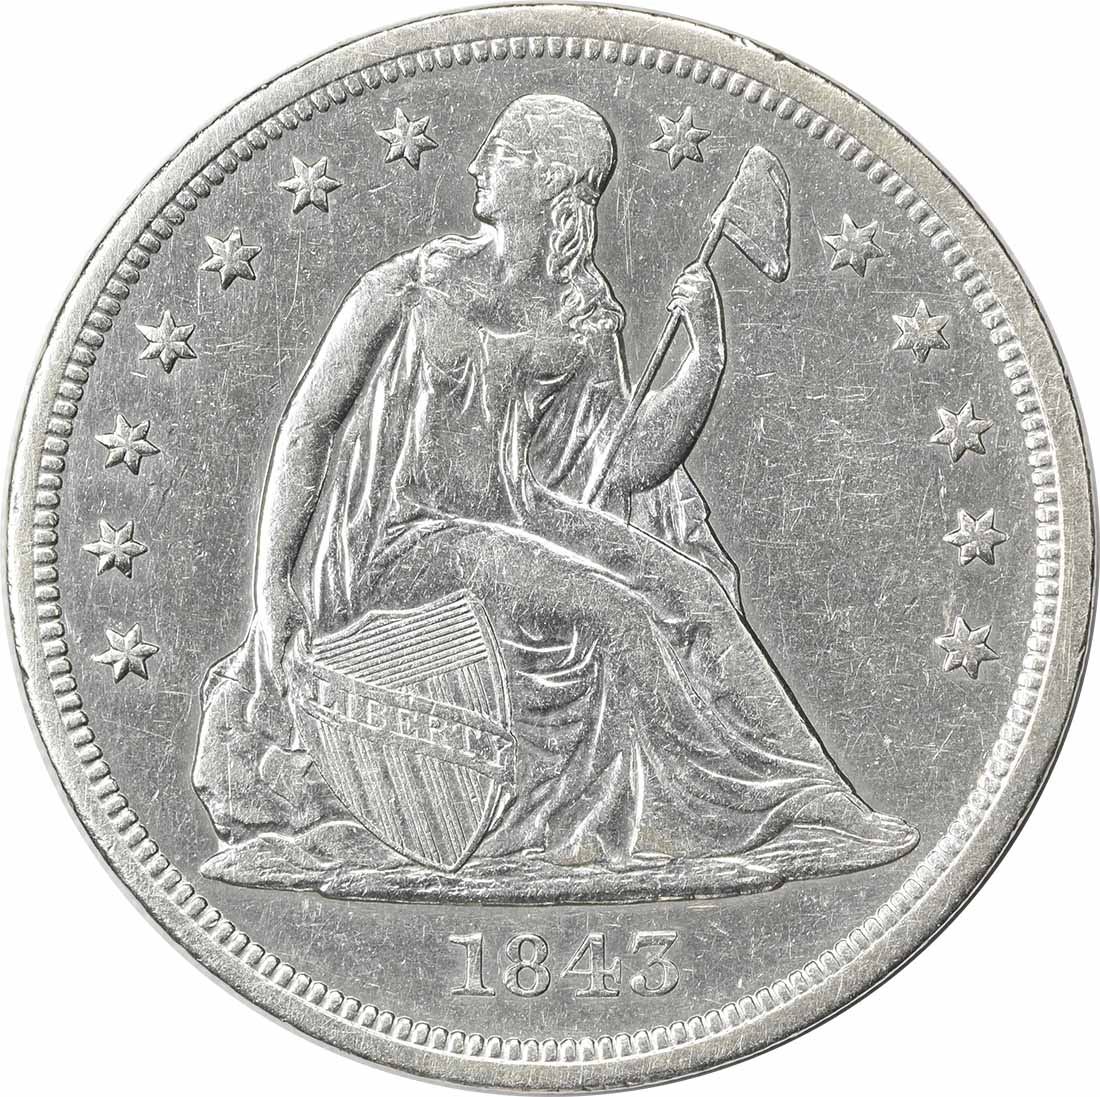 1843 Liberty Seated Silver Dollar AU Uncertified